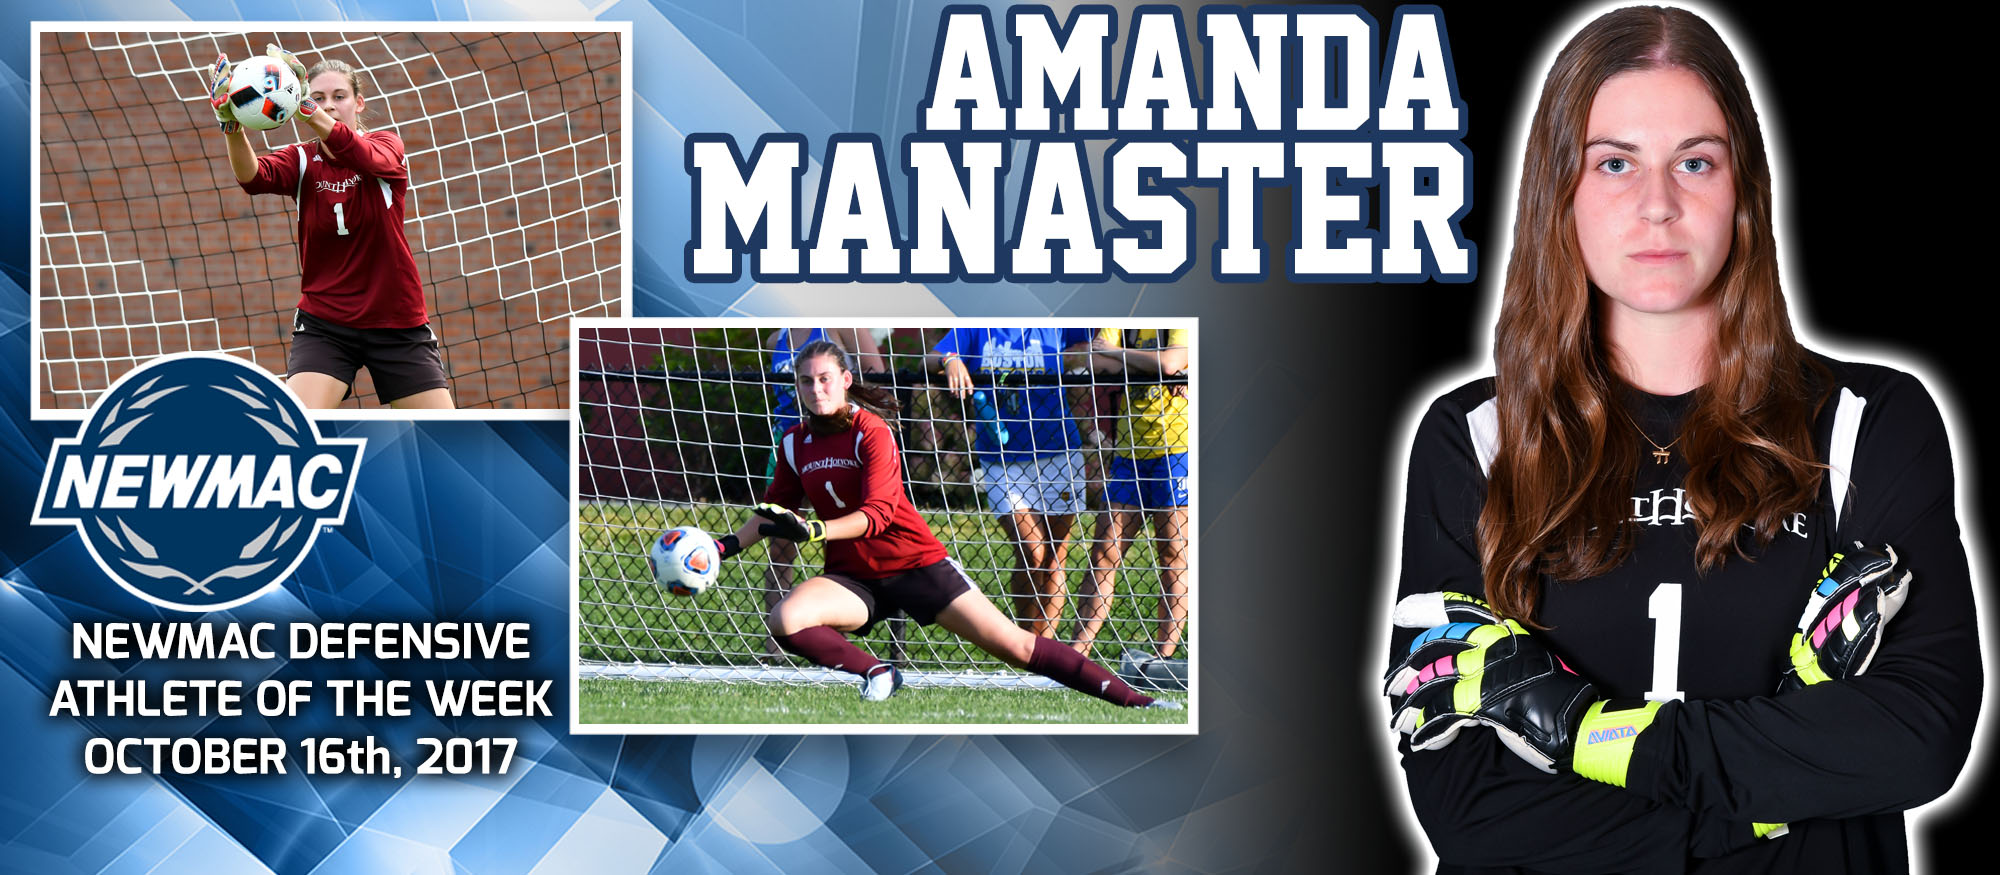 Image featuring Lyons soccer goalie Amanda Manaster, who was named the NEWMAC co-Defensive Athlete of the Week on October 16